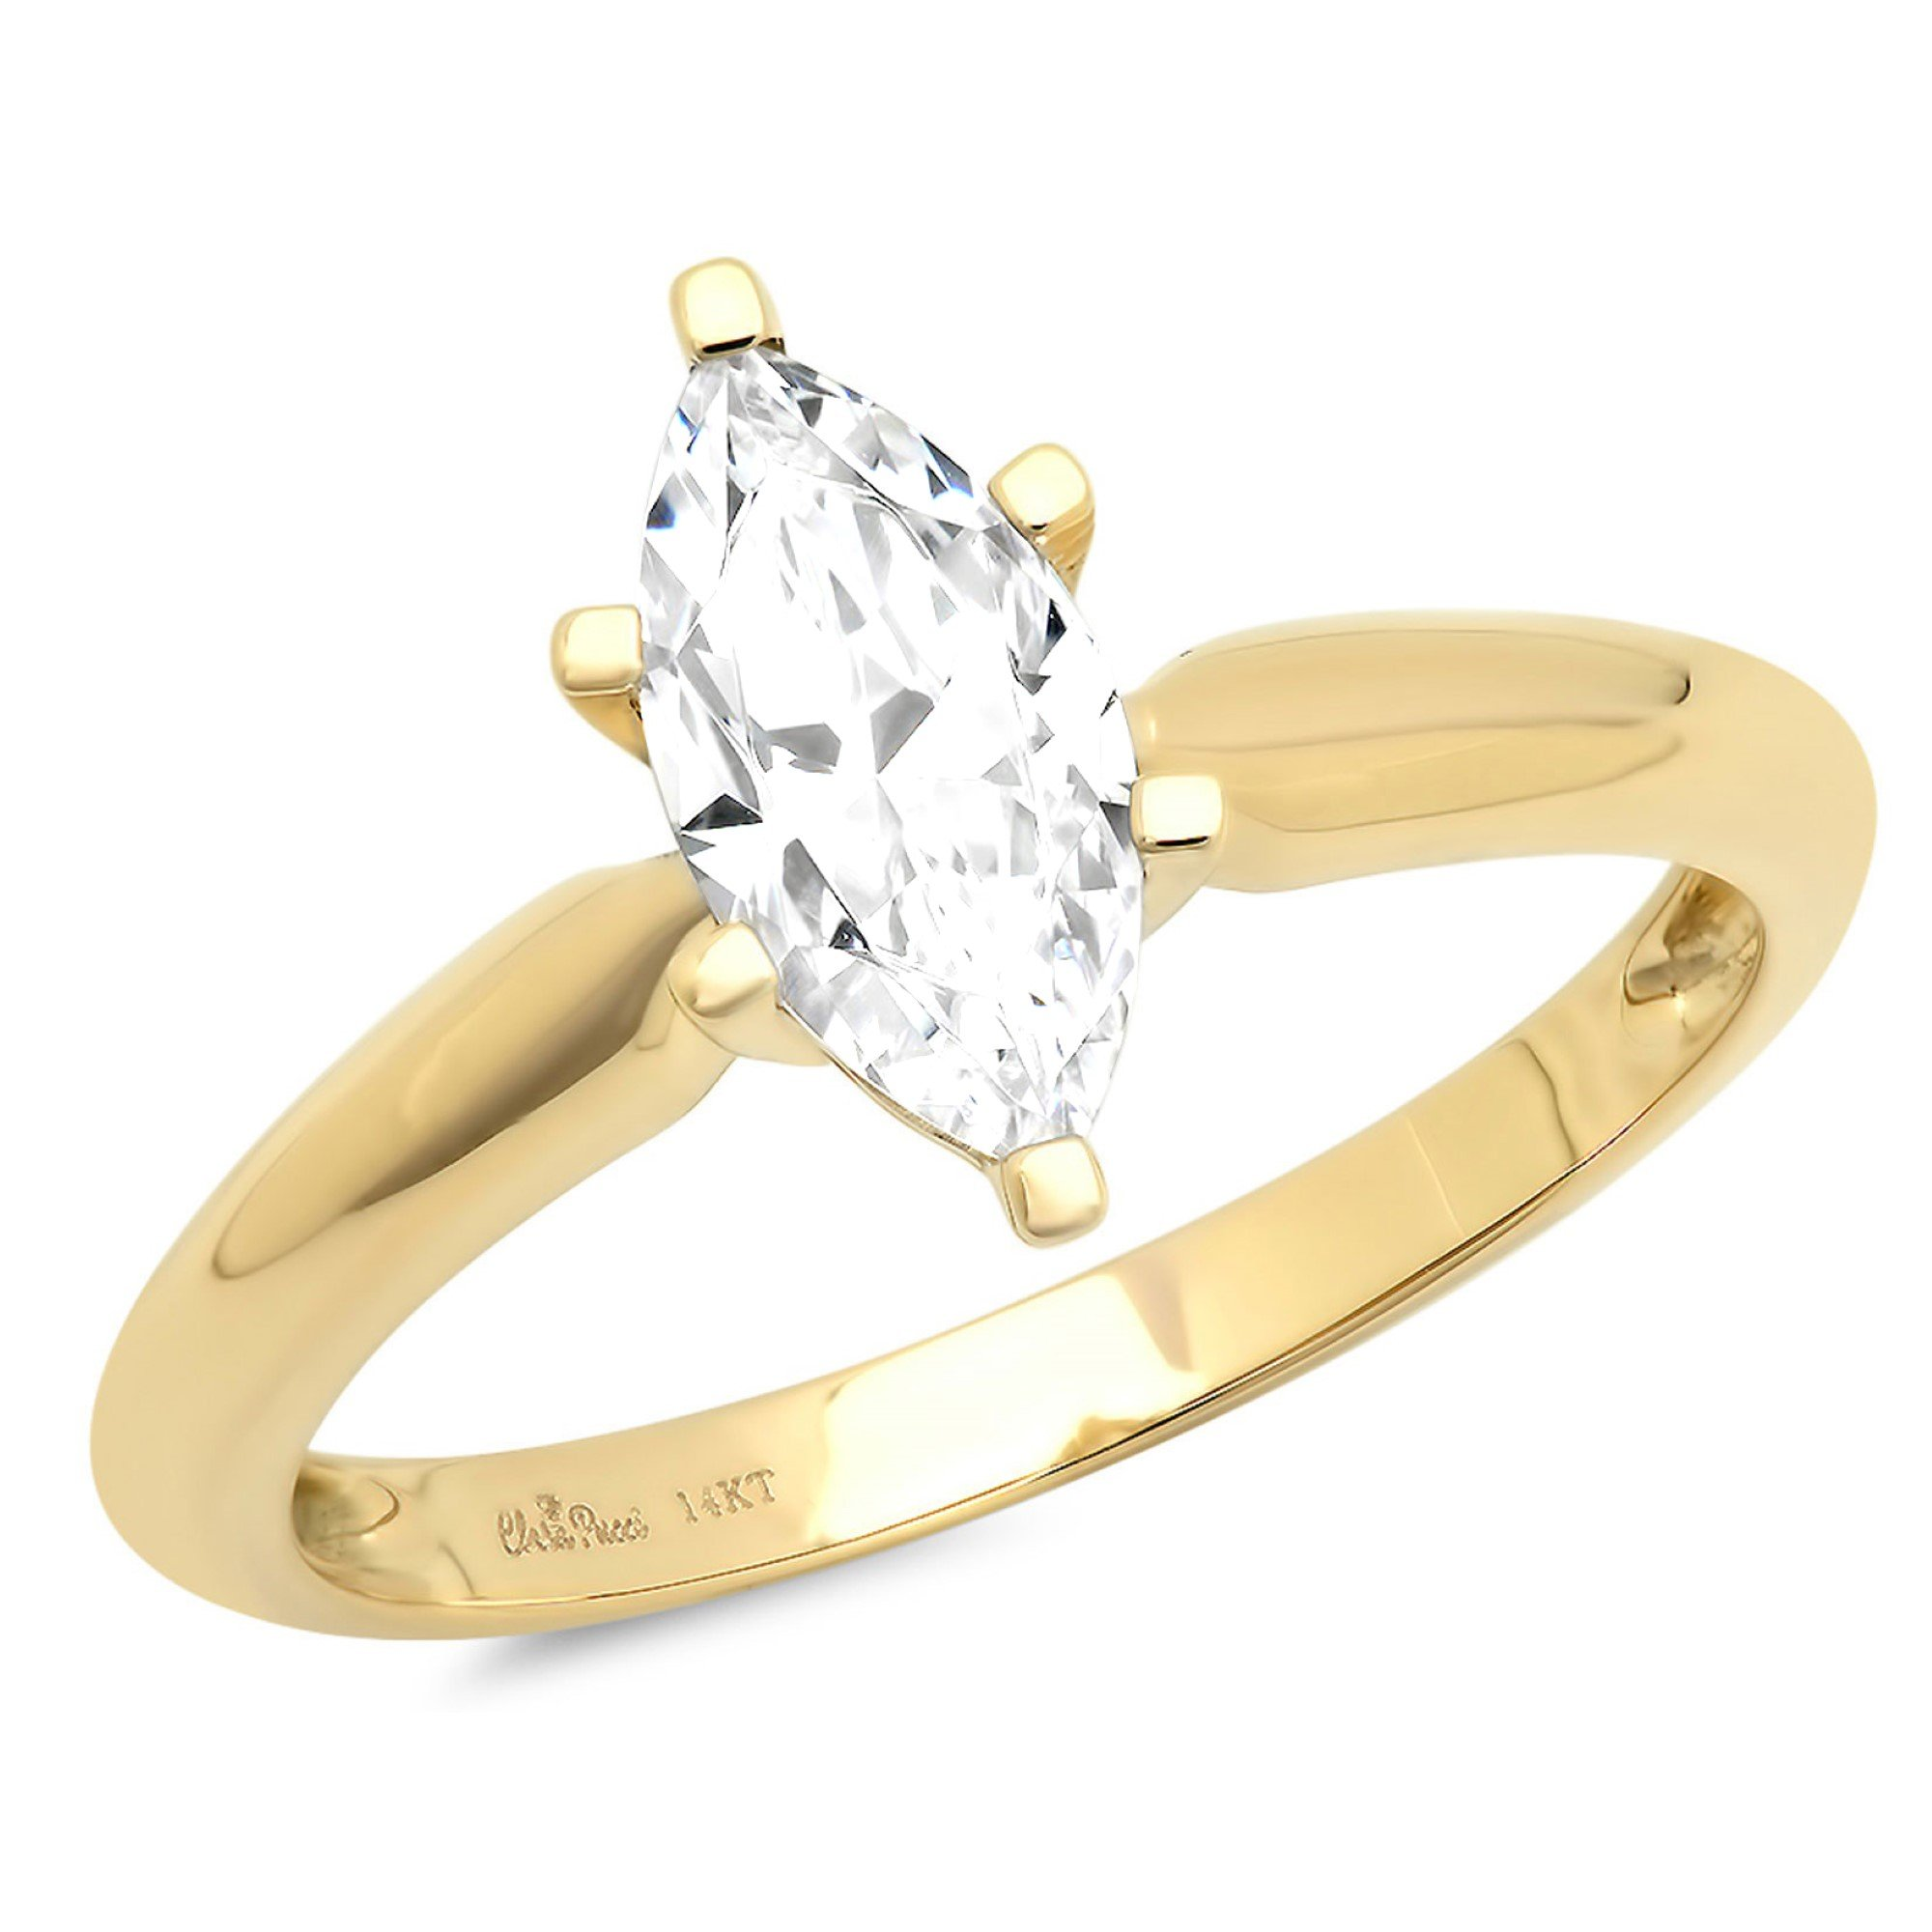 1.45ct Brilliant Marquise Cut Solitaire Highest Quality Moissanite Ideal D 6-Prong Statement Ring in Solid Real 14k Yellow Gold for Women